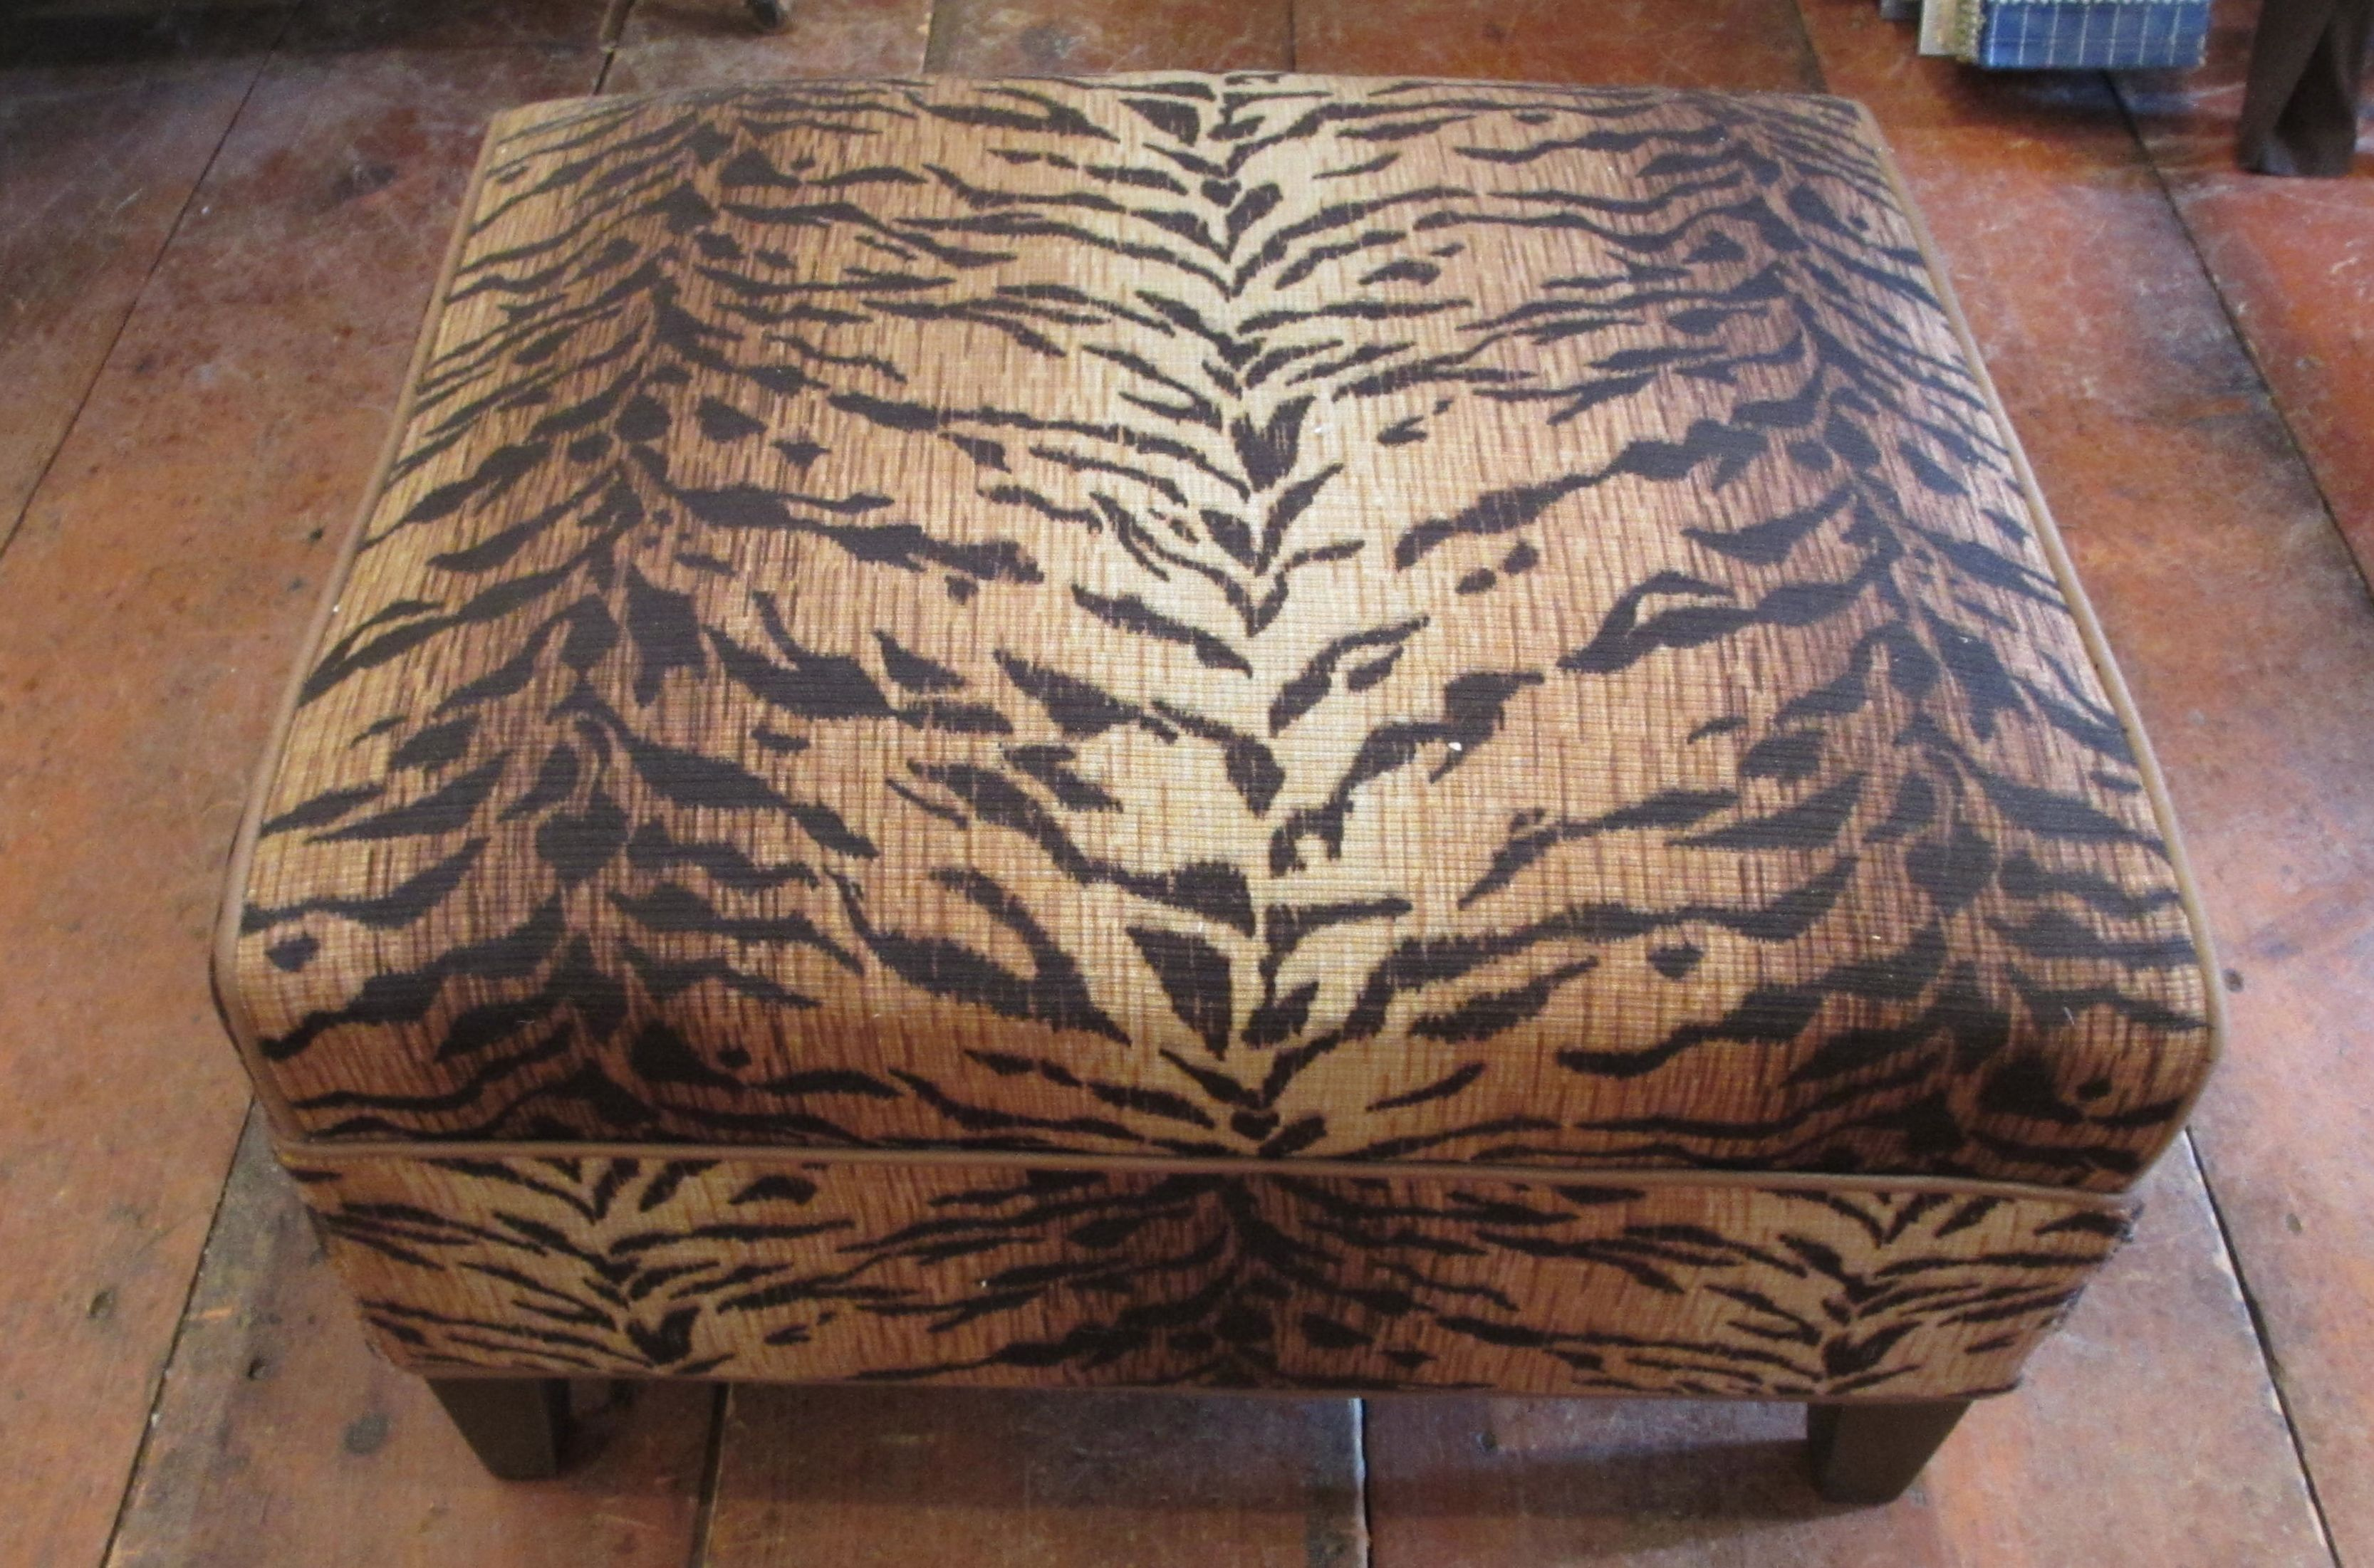 1930 Antique Upholstered Chair Upholstery Fabric For Rattan Furniture